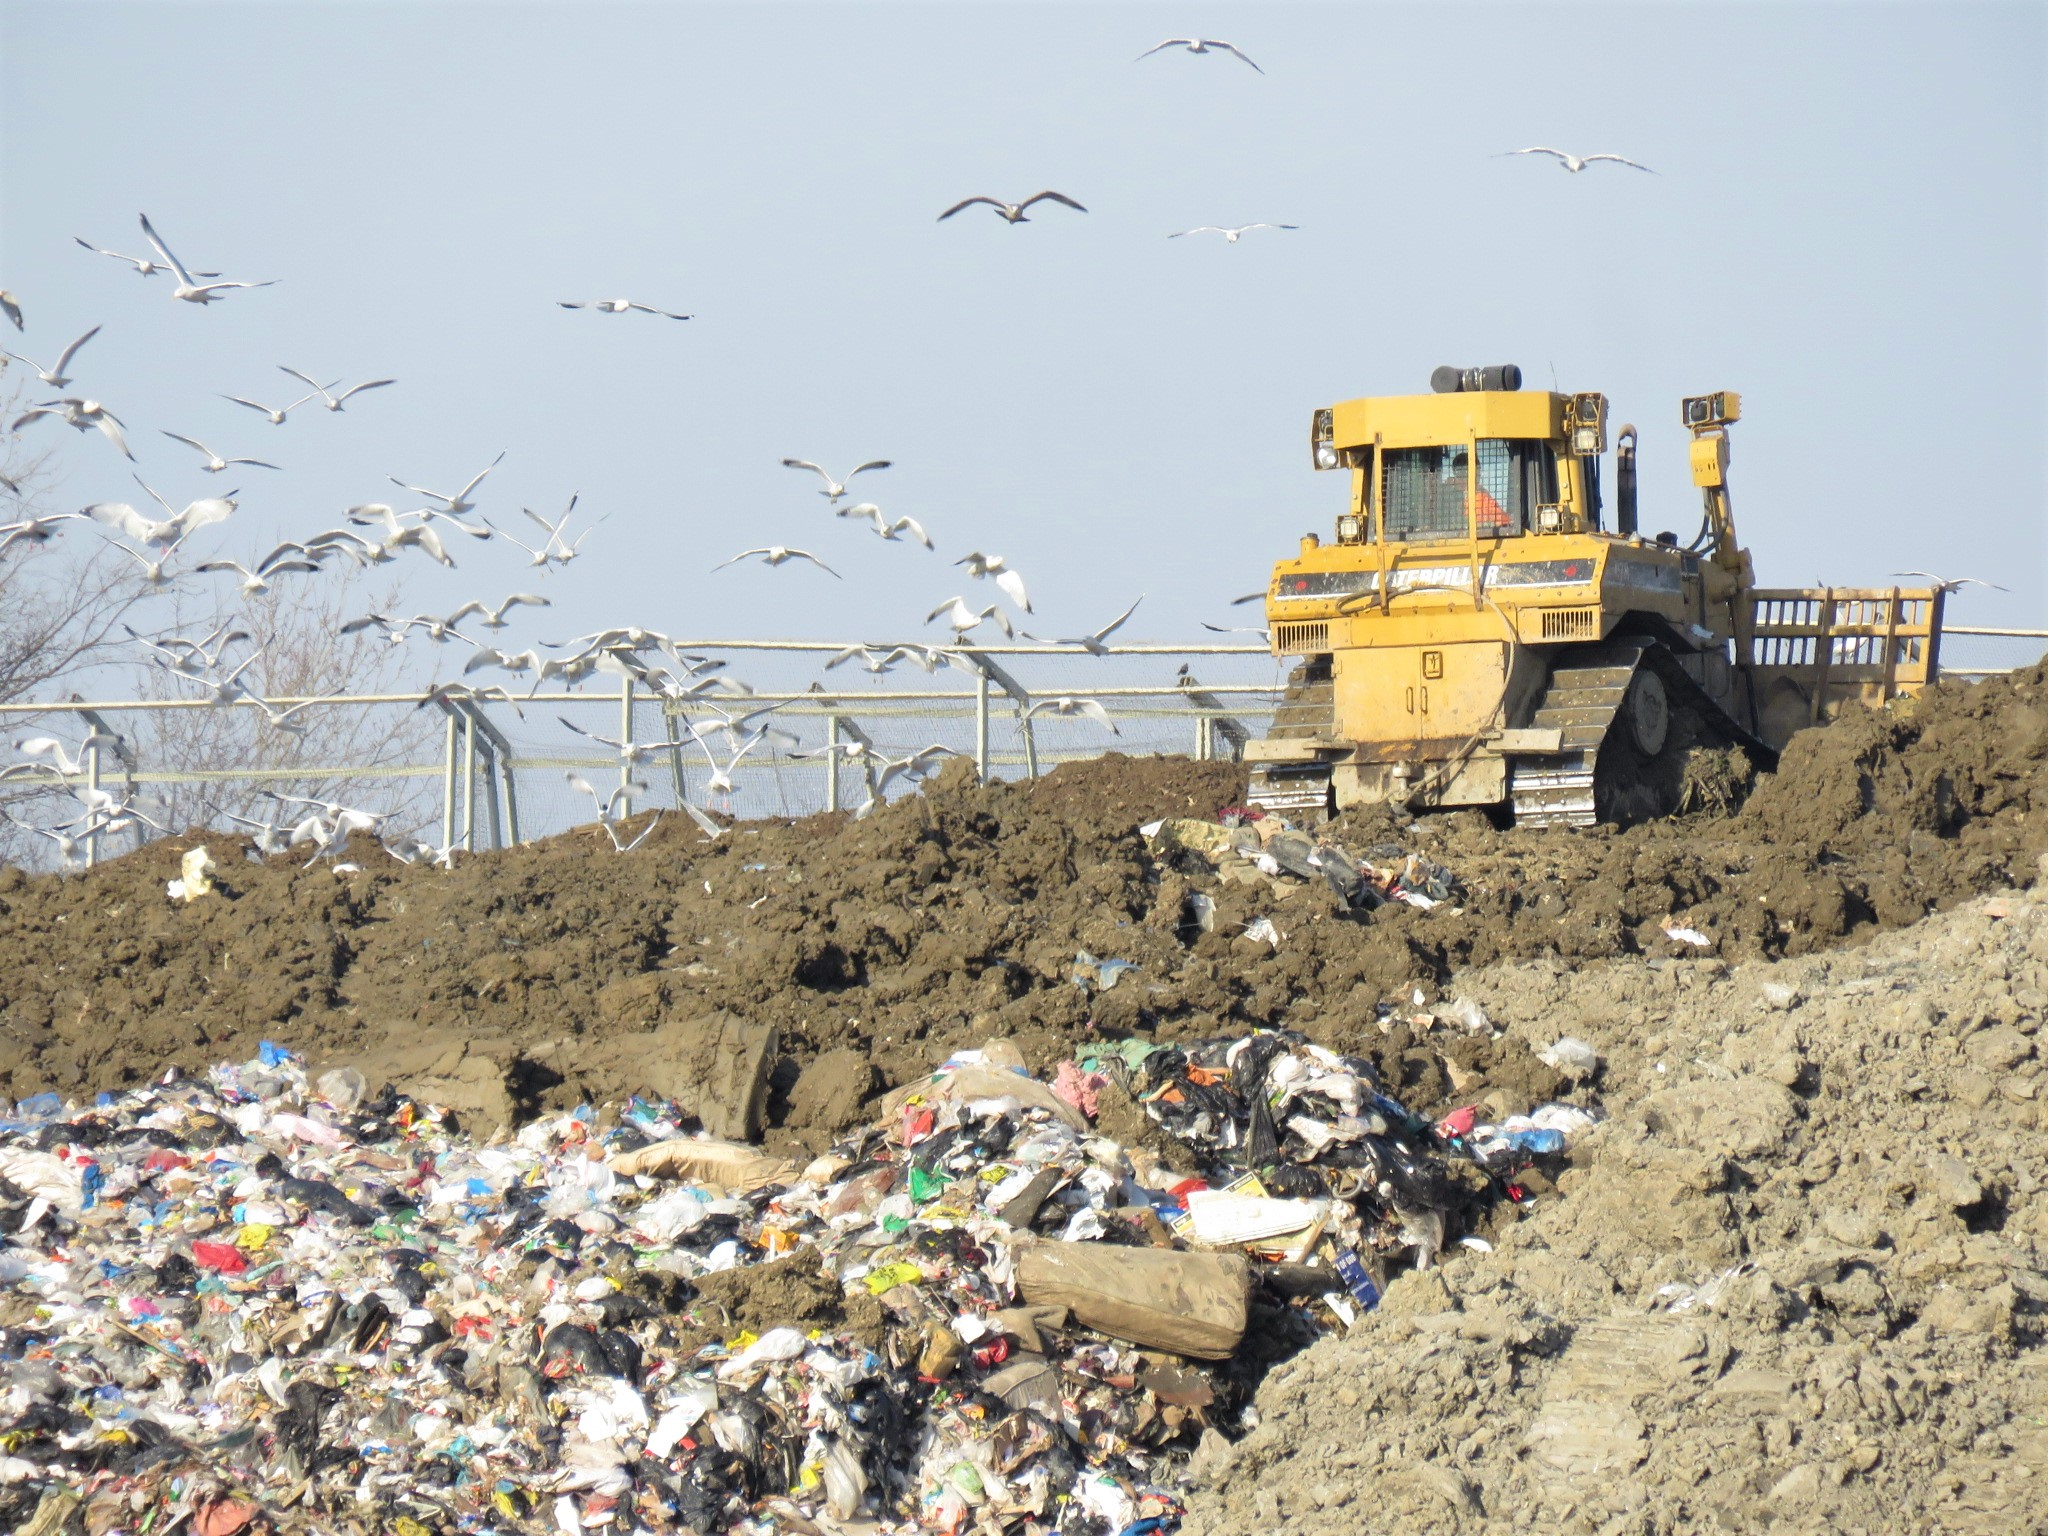 Birds and machinery at the Regional Landfill in Essex